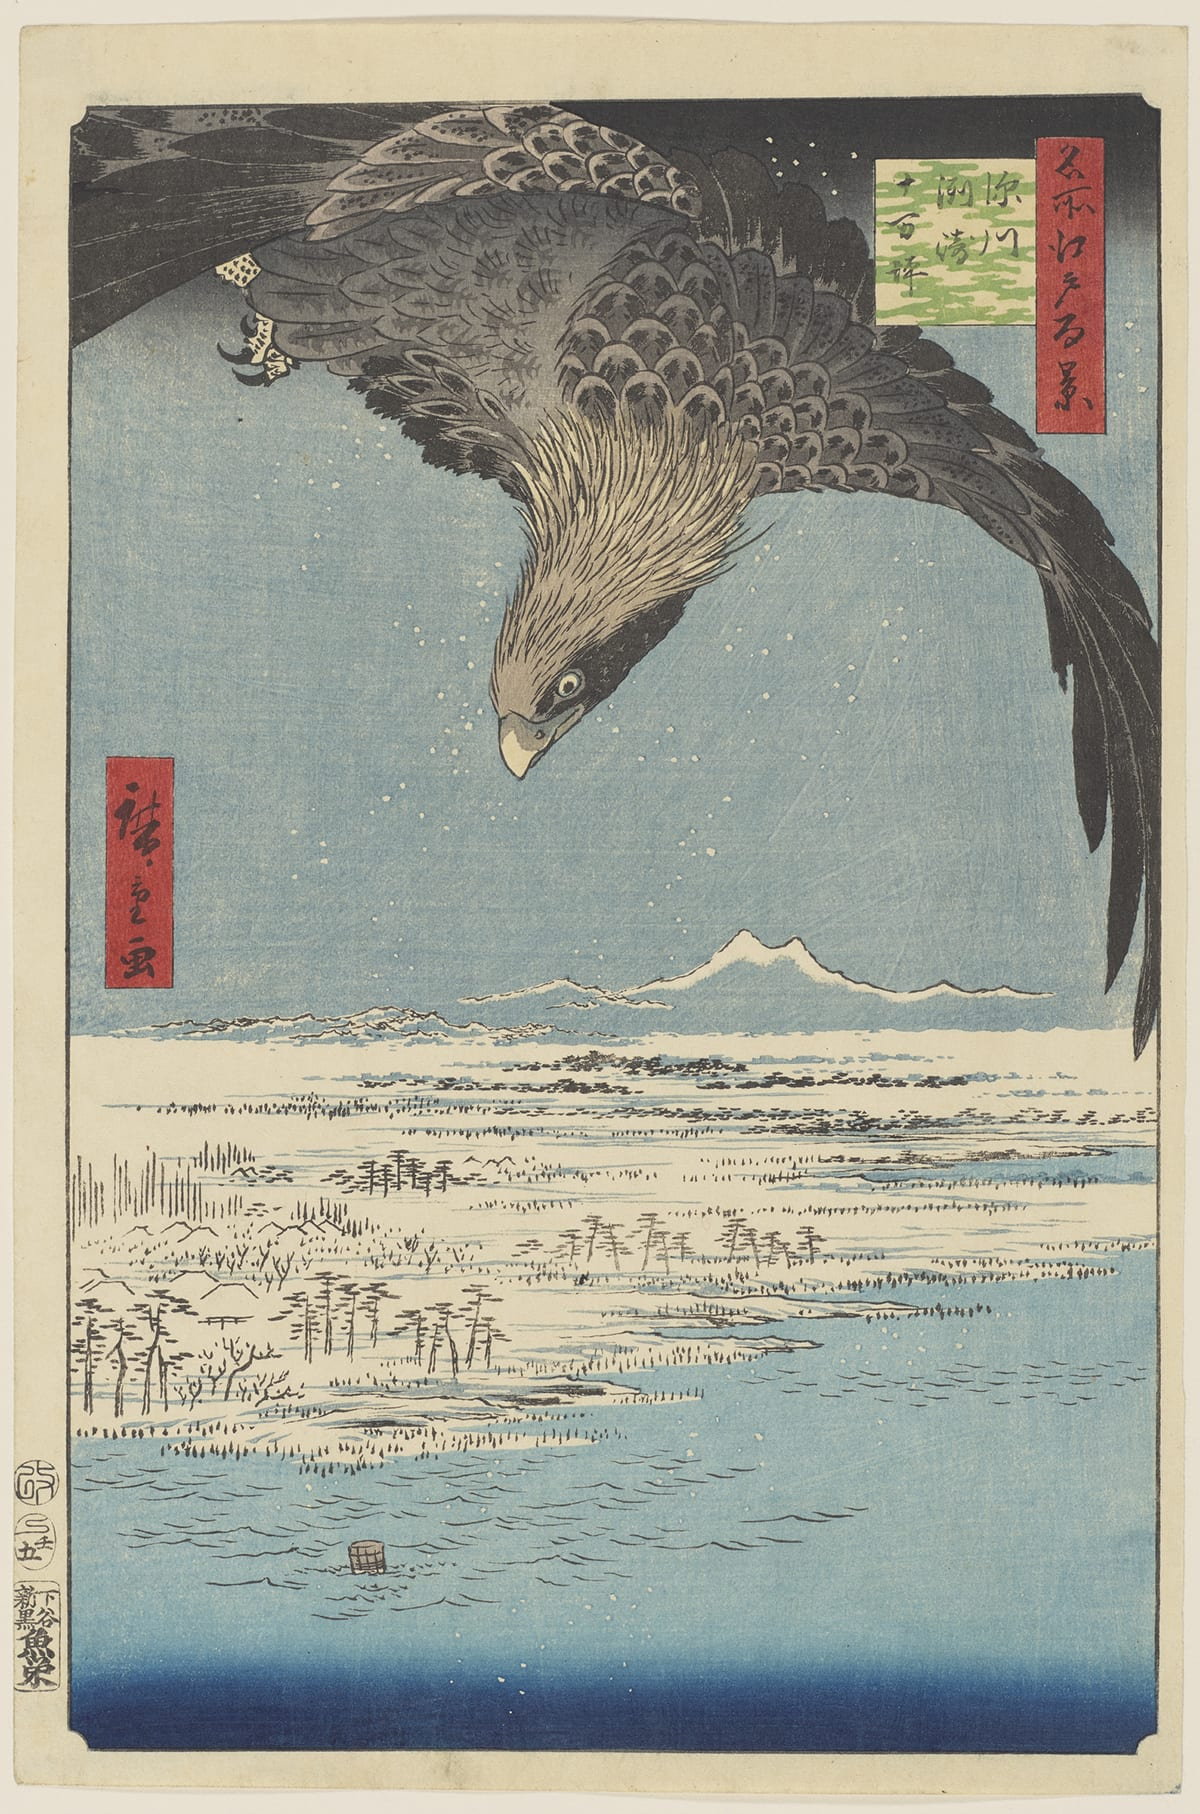 "Fukagawa Susaki and Jūmantsubo, No. 107 from the series One Hundred Famous Views of Edo, Utagawa Hiroshige, 13 3/16 in x 8 3/4 inches, color woodblock print on paper. A vertical, rectangular print showing a large bird of prey in flight with its head down and wings spread wide as flies over the land below. The bird fills the upper third of the print and is rendered in black and gray feathers with long plumage on the head. The wing on the right dips down to the lower part of the print and its talons can be seen at upper left under the bird. Below are a mountain range with two peaks and a forested landscape that meets a calm blue sea. Simple tree shapes and small hills are depicted in black on creamy, white ground with pale blue used for shading. The sea is also pale blue that gradually deepens at the bottom of the print. Simple black lines show shallow waves. ""Fukagawa Susaki and one hundred thousand tsubo"" in Japanese is printed in black ink in a green square cartouche with cloud-pattern ground at upper right. One hundred thousand tsubos is about 33 hectares. To the right of this is a red rectangular cartouche that reads ""one hundred views of famous places of Edo"" in Japanese and is printed in black ink. The artist's signature appears at far left center in a red rectangular cartouche and reads ""picture (by) Hiroshige."